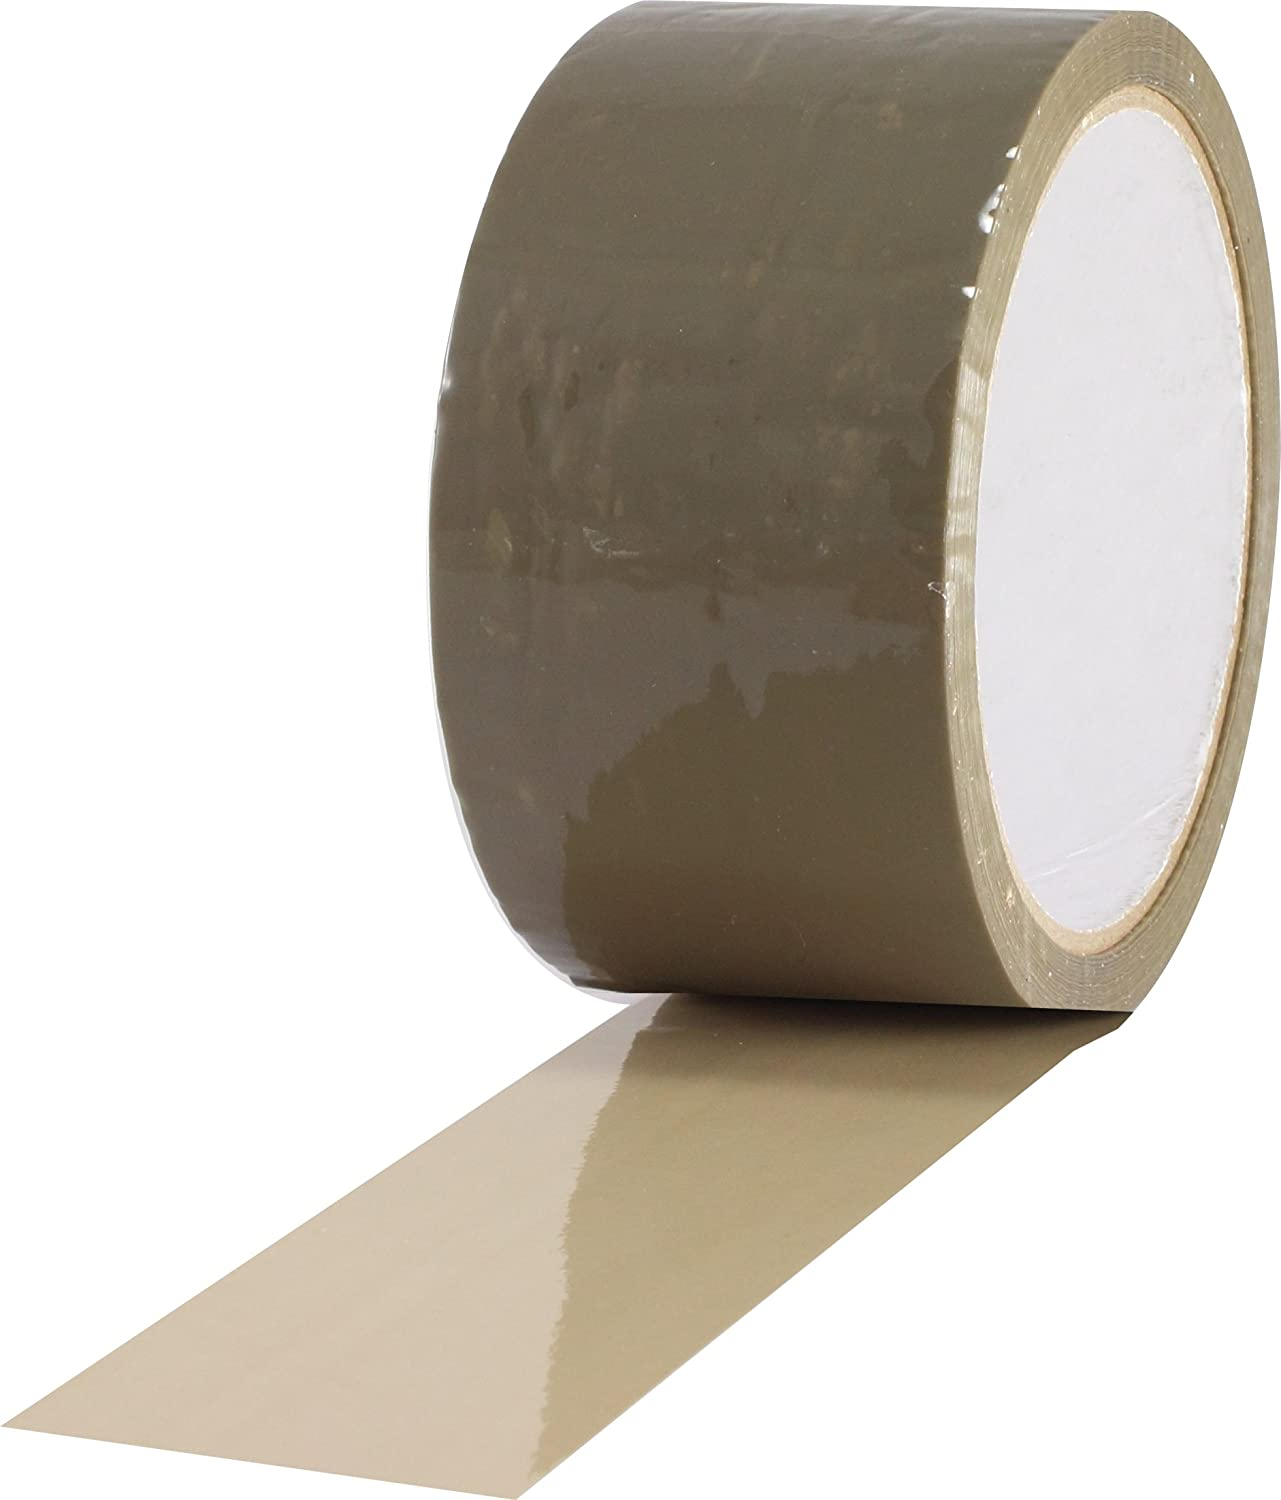 1.8 mil Thick 110 yds Length x 3 Width ProTapes Pro Seal-300 Synthetic Rubber General Purpose Carton Sealing Tape with Polypropylene Backing Tan 110 yds Length x 3 Width ProTapes /& Specialties Pro-Seal-300-3x110-T Pack of 1